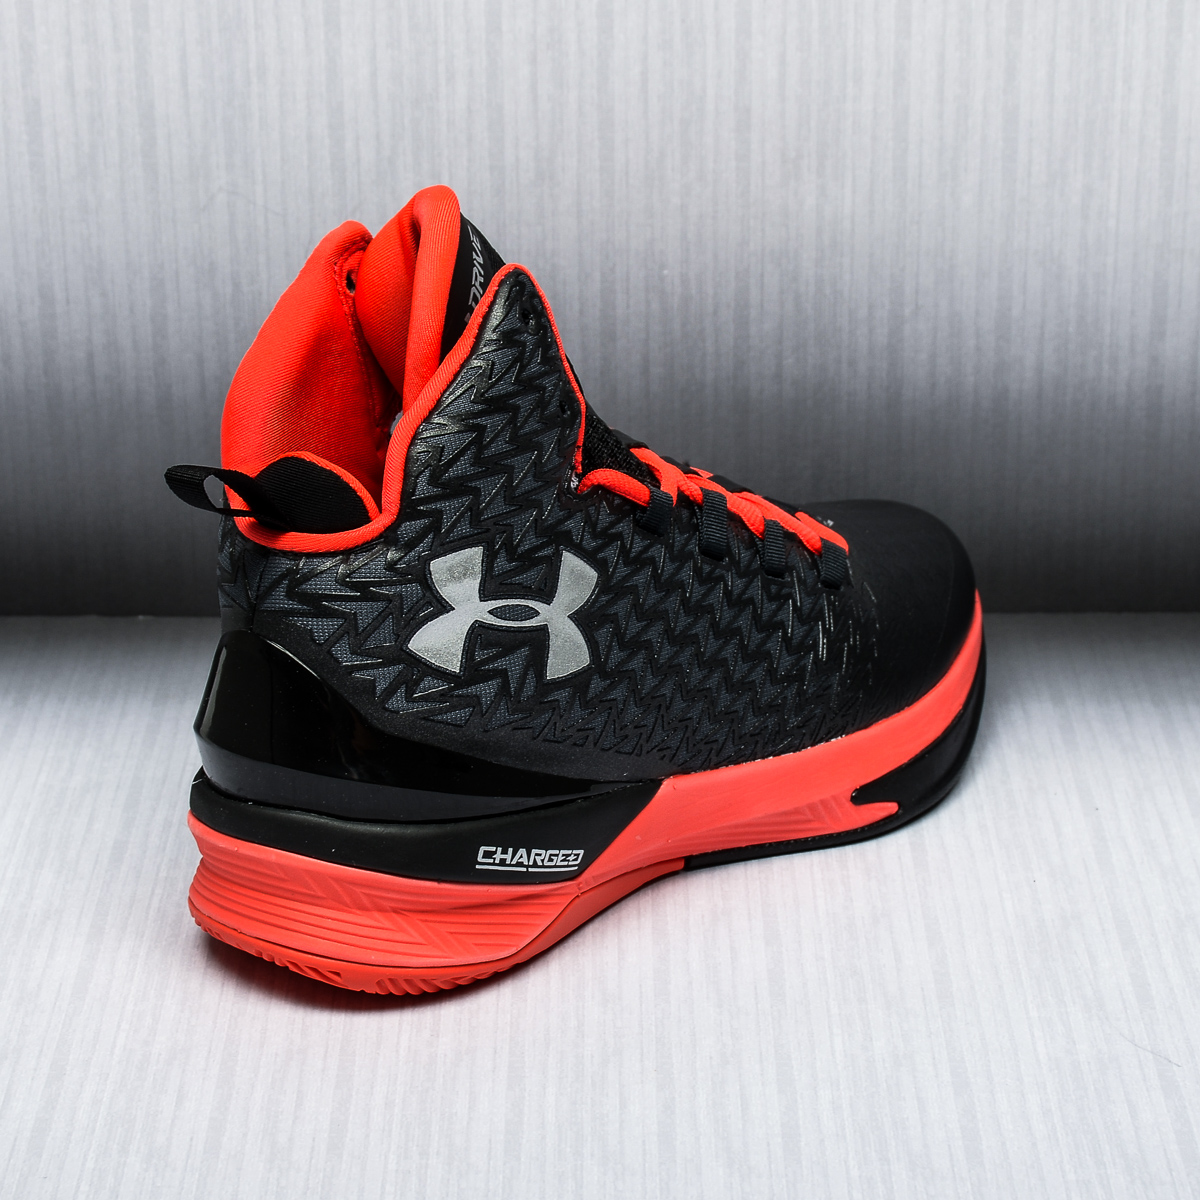 Under Armour Basketball Shoes Charged